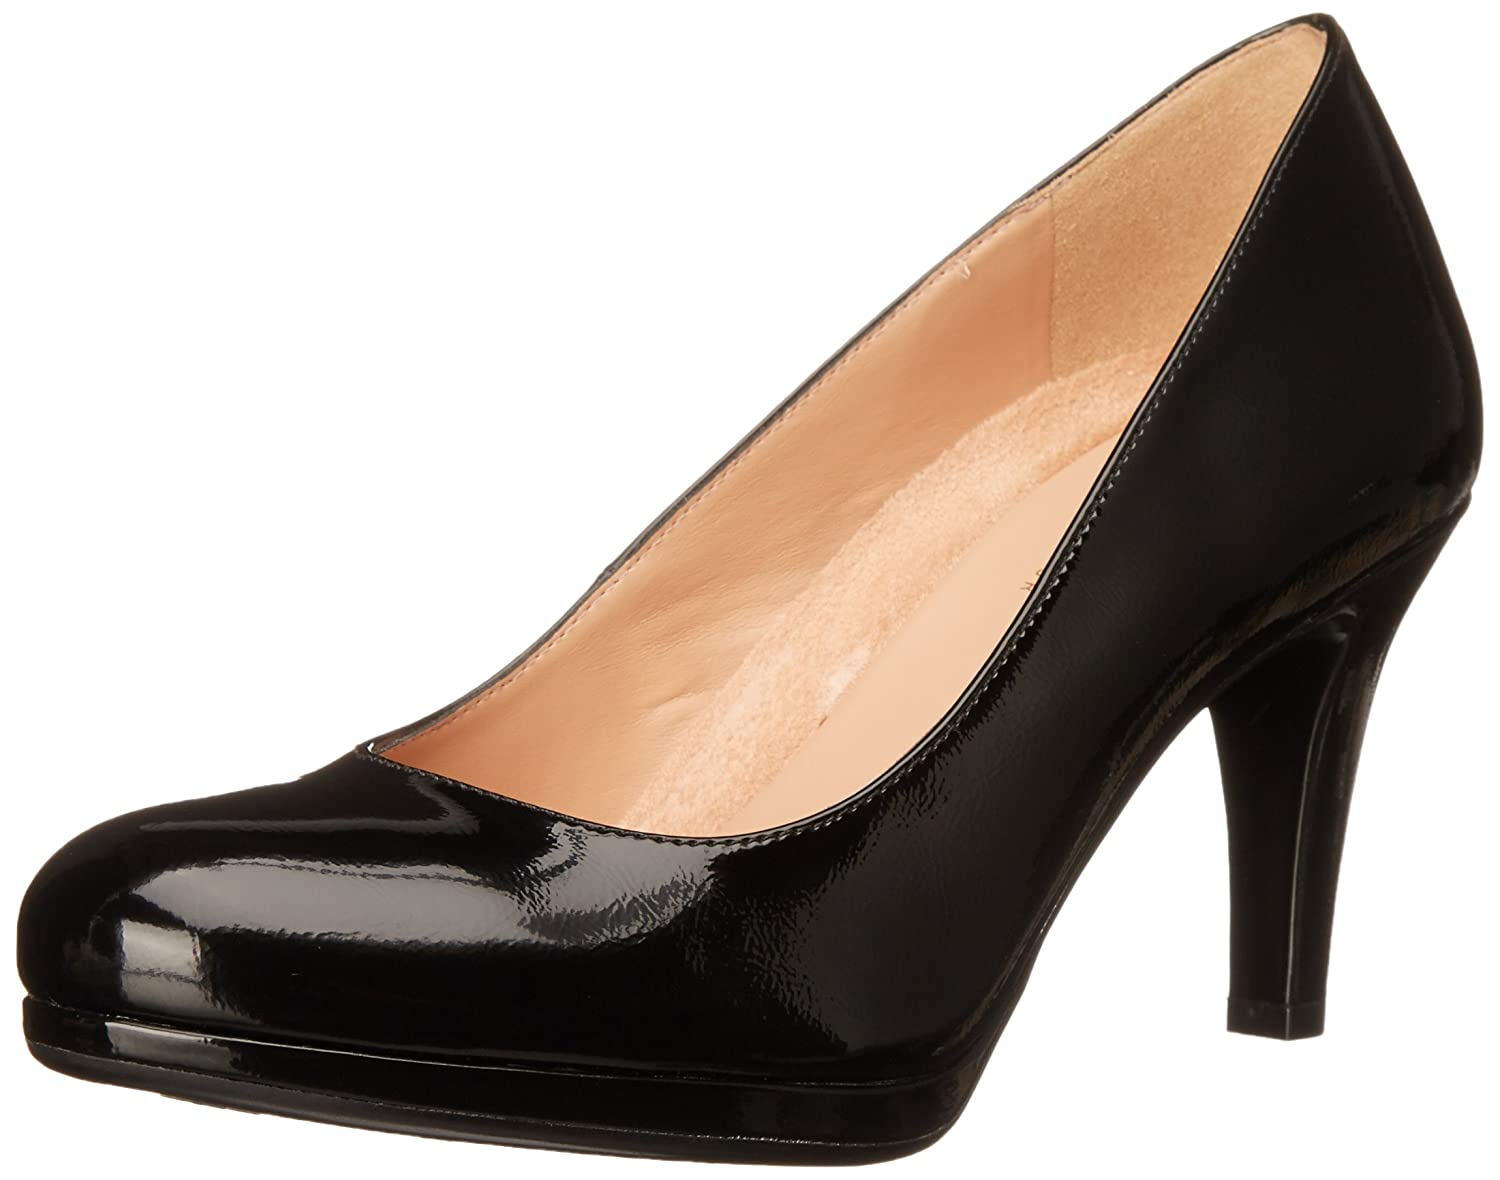 Naturalizer Women's Michelle Dress Pump B00RBVP9I4 10 N US|Black Shiny